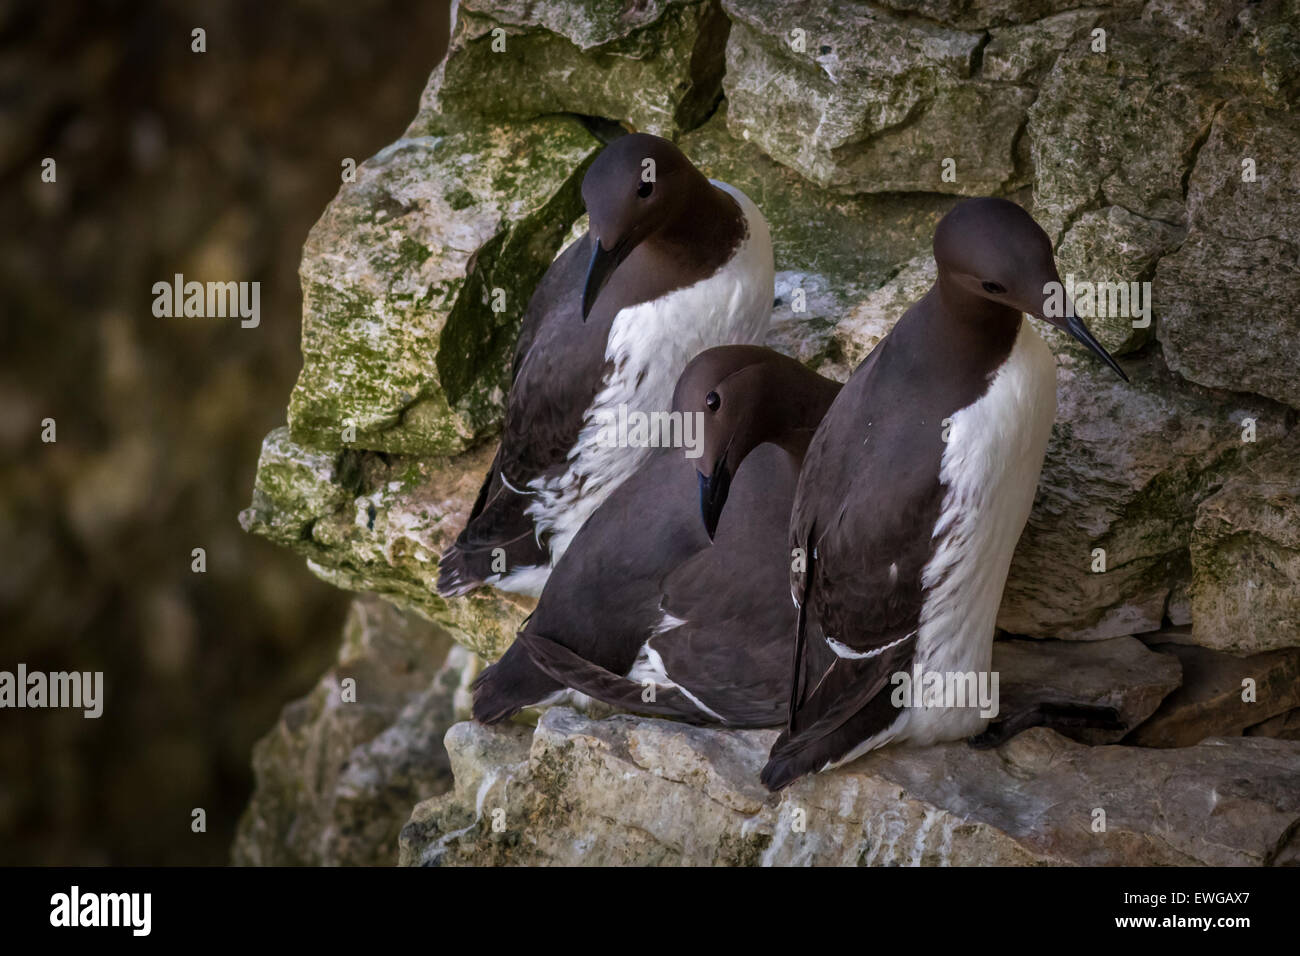 Three guillemots on a ledge - Stock Image